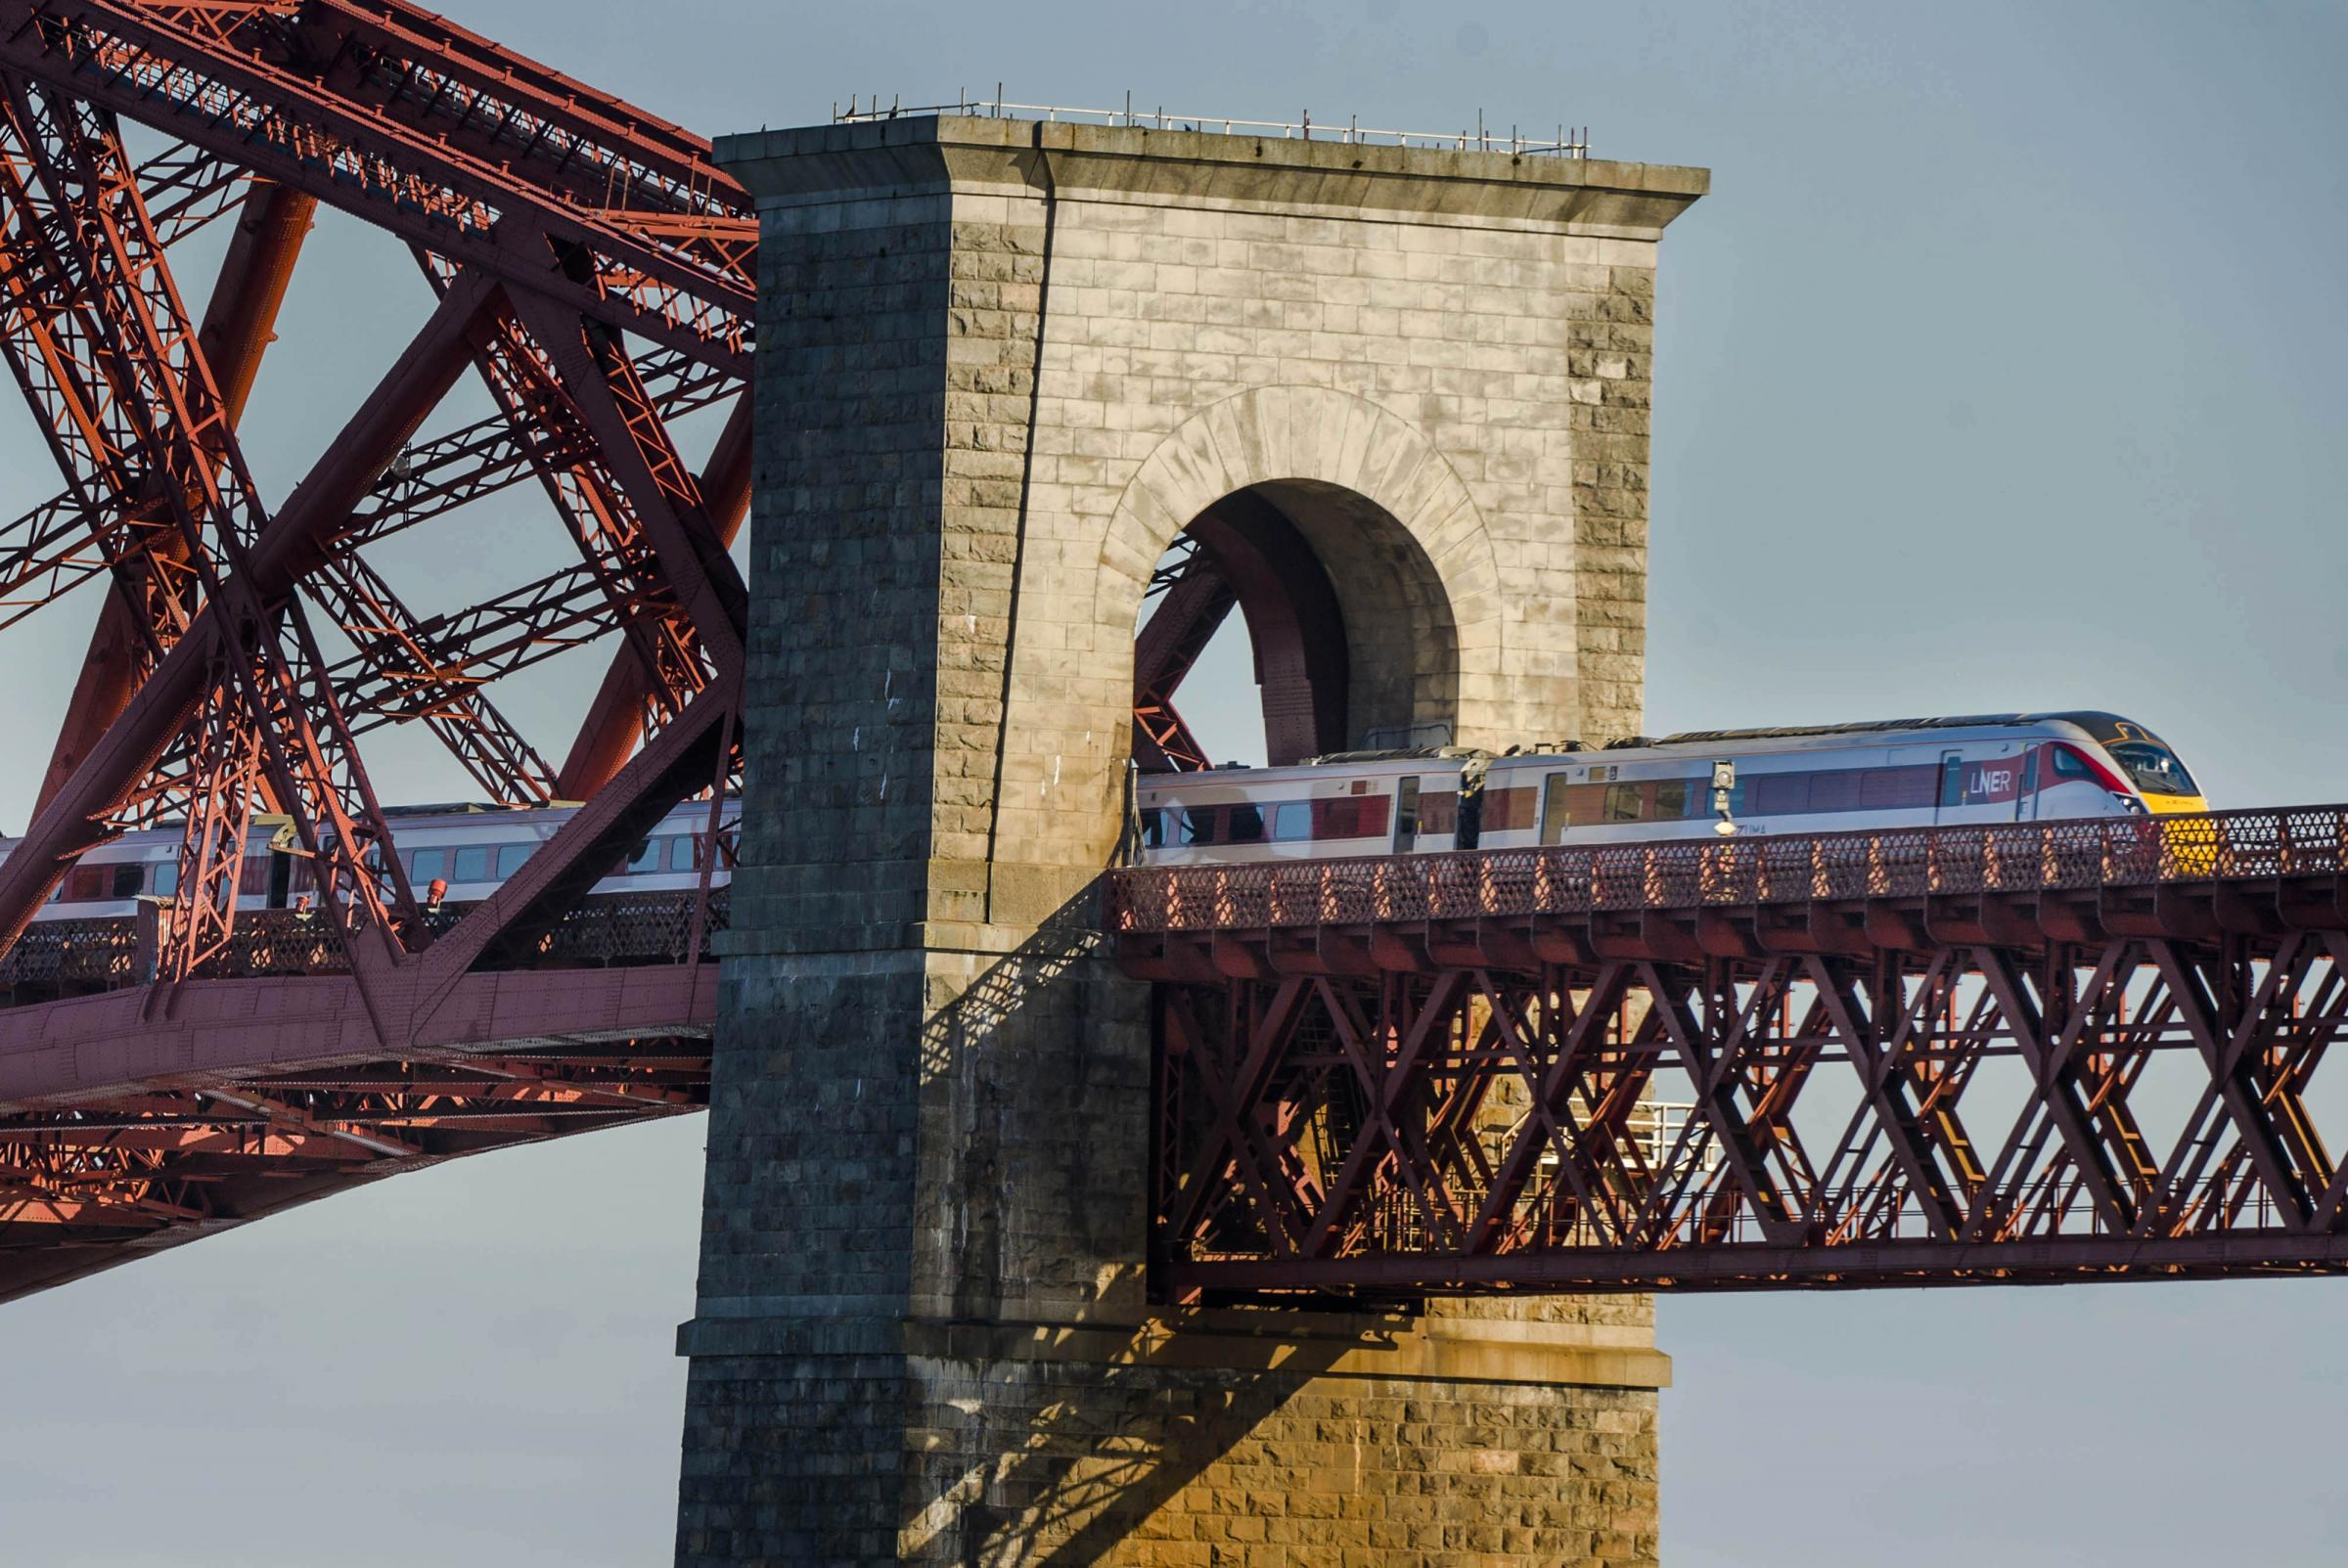 Anger as LNER ends distancing on trains in Scotland due to 'English guidance'